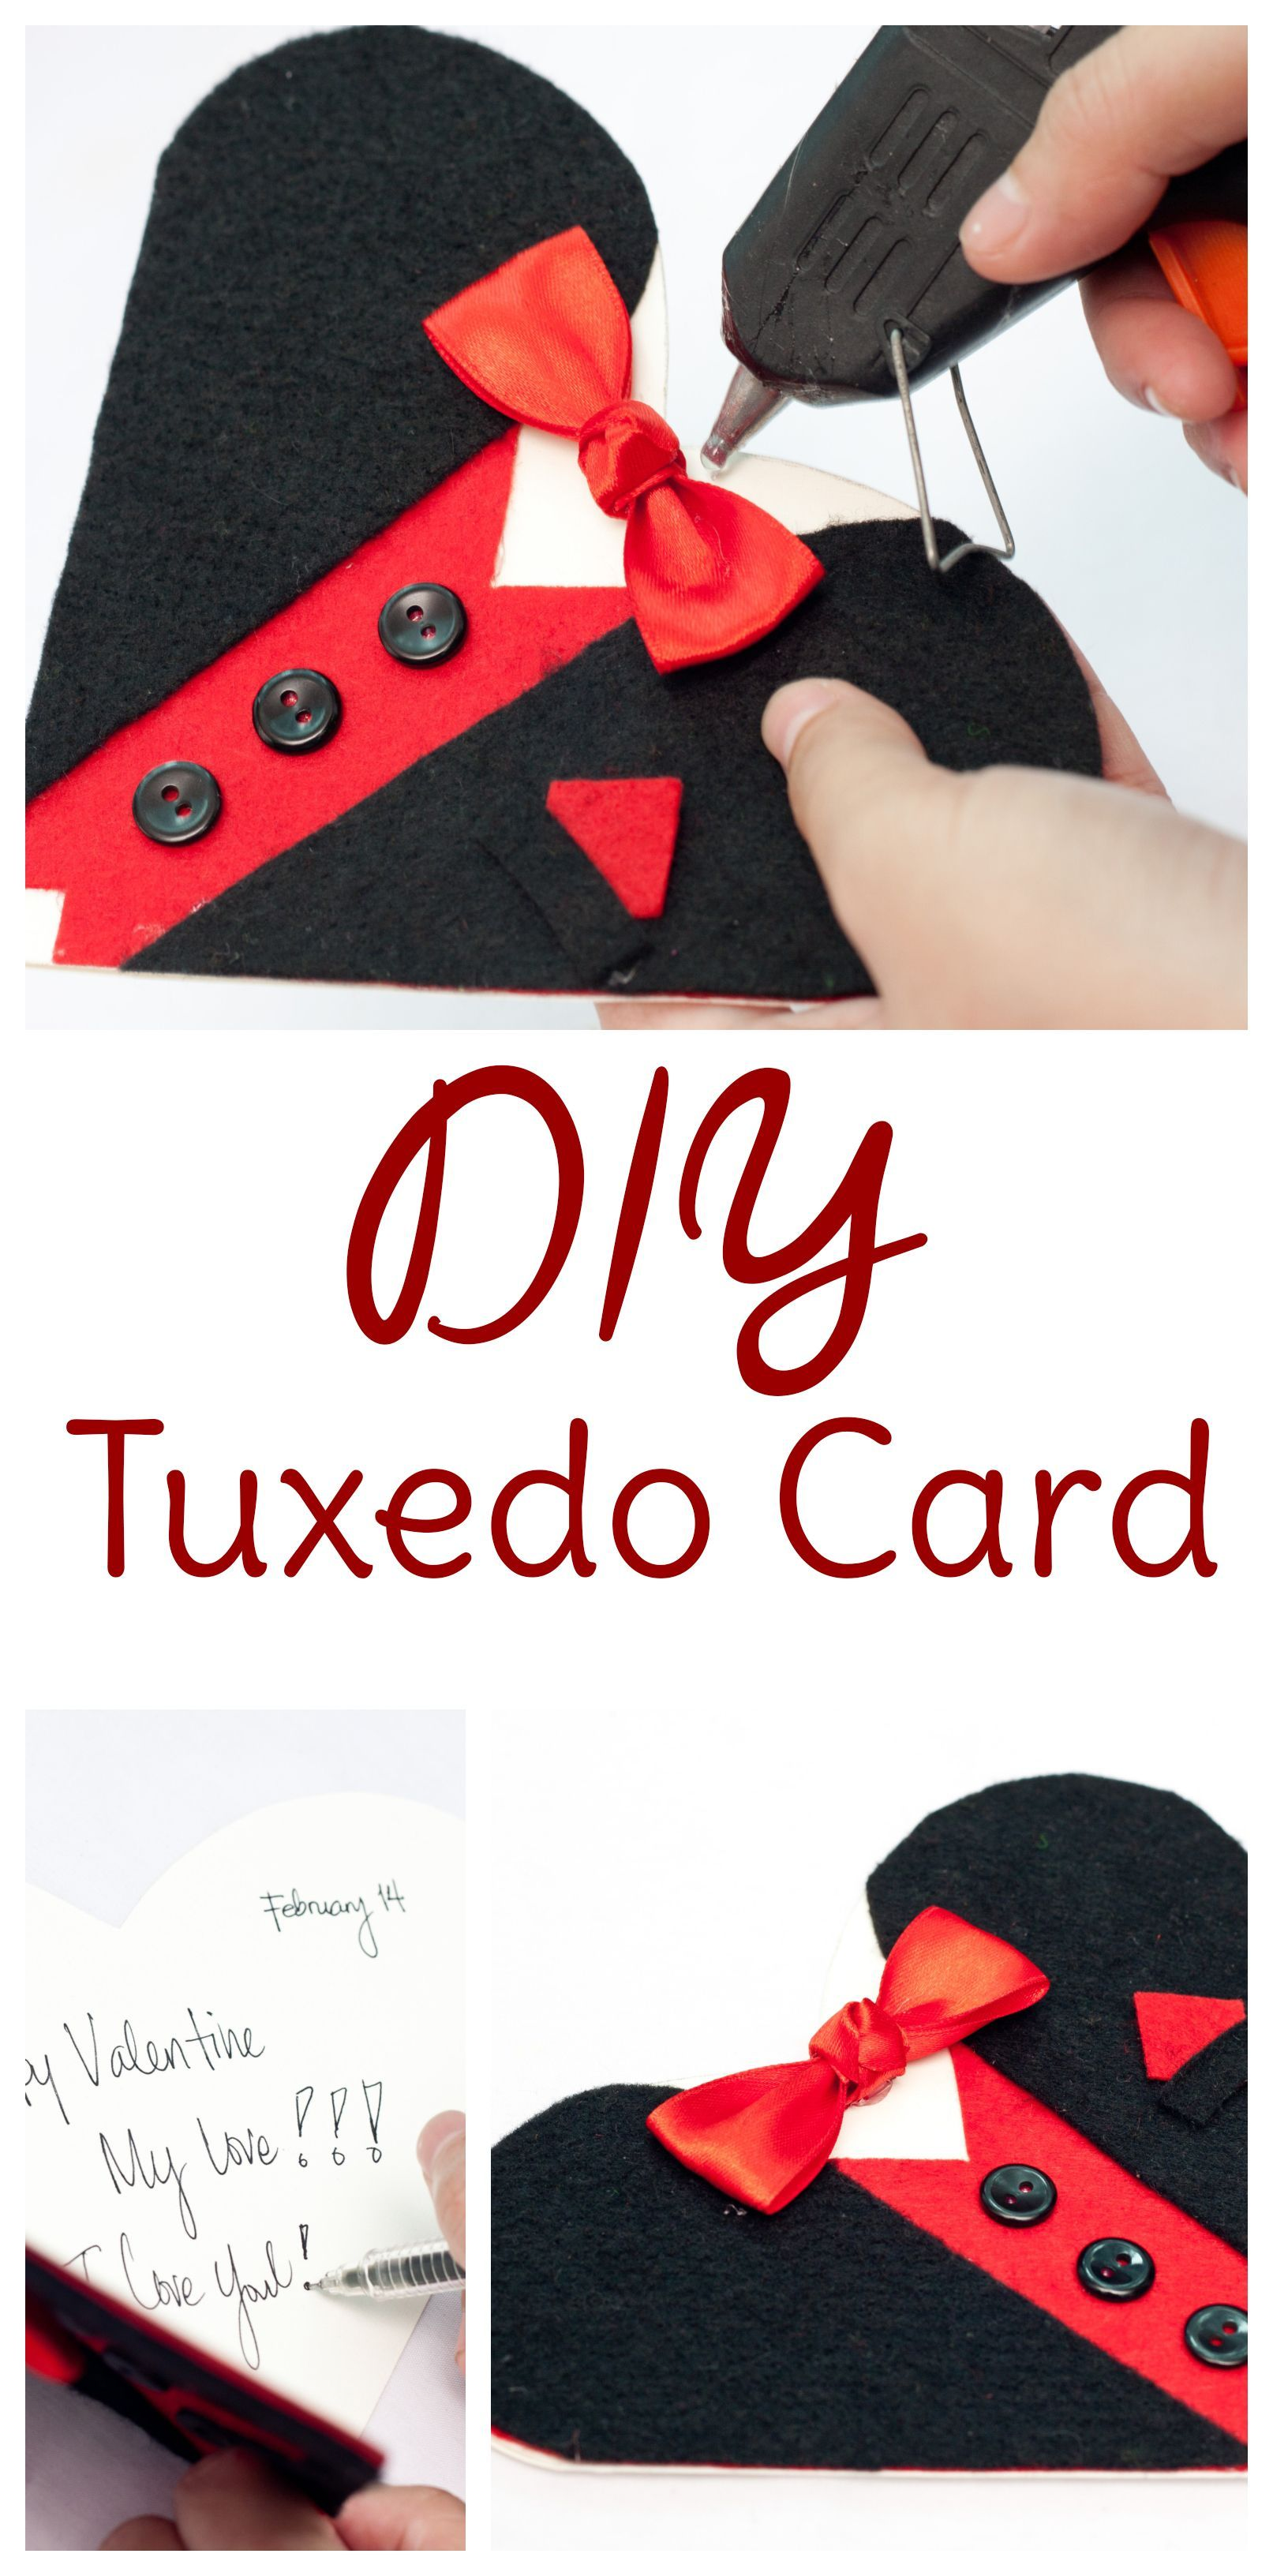 Tuxedo Card Tuxedo Card Diy With Free Printable Heart Template Tuxedo Card In 2020 With Images Tuxedo Card Printable Heart Template Card Making Ideas Free Printables